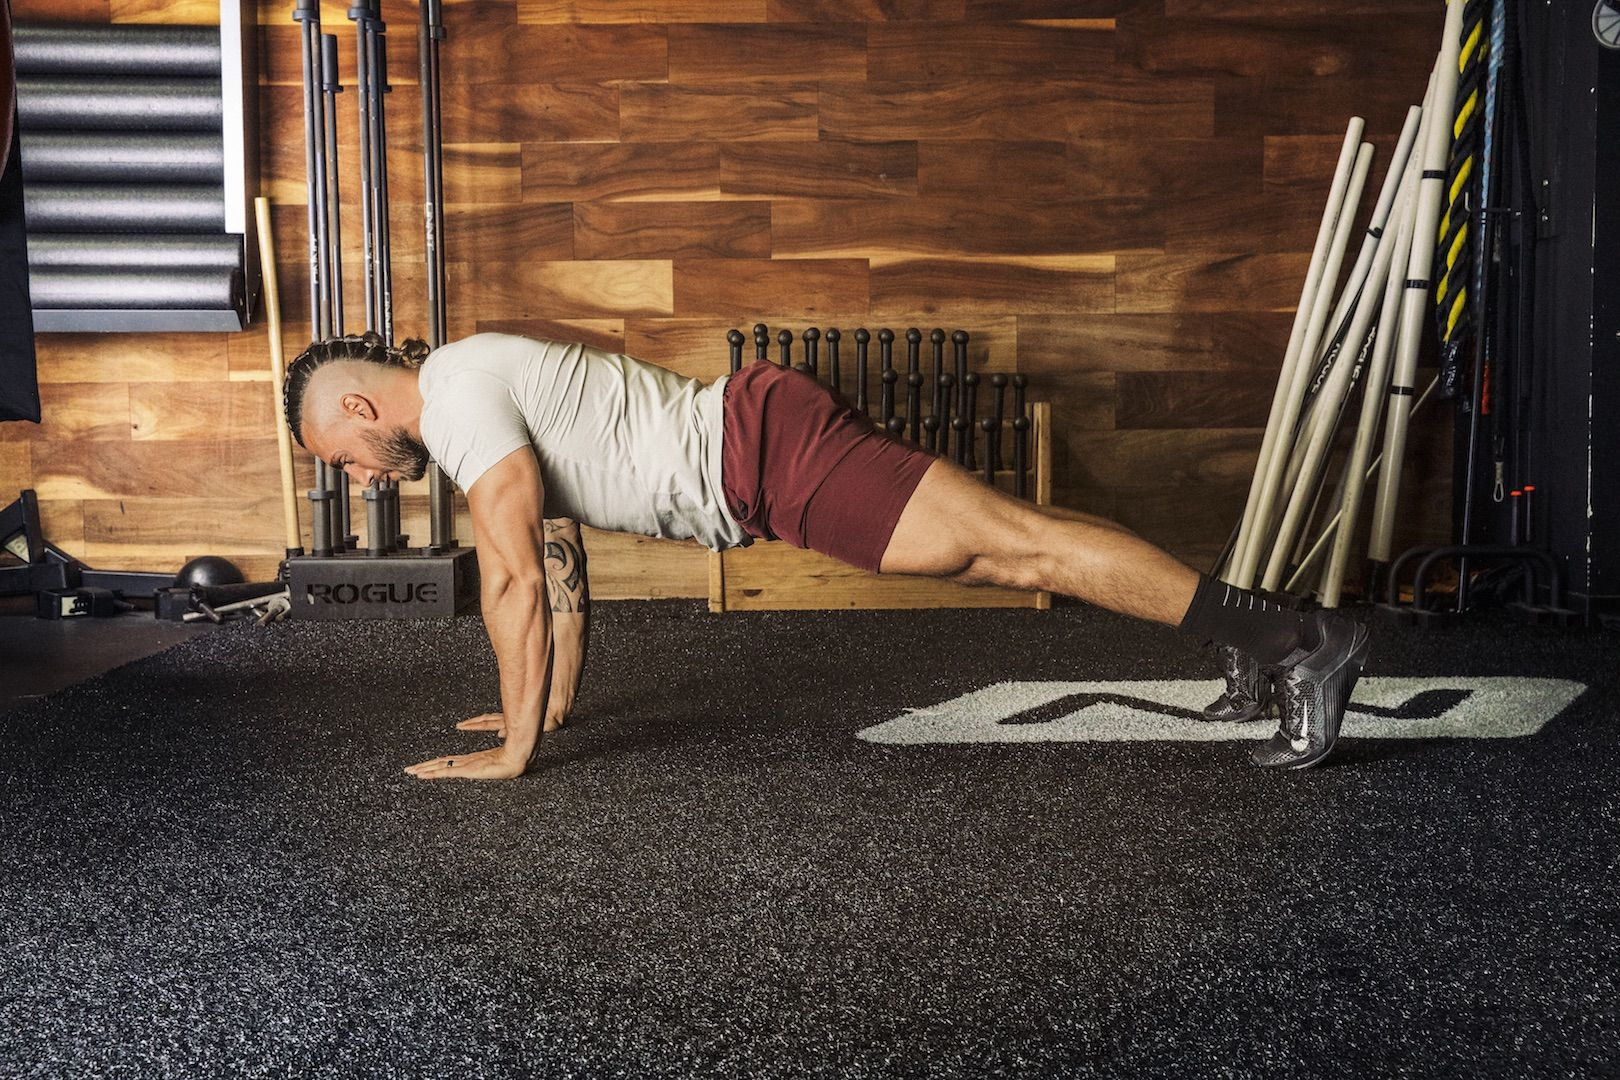 You Need to Add Power to Your Workout Routine